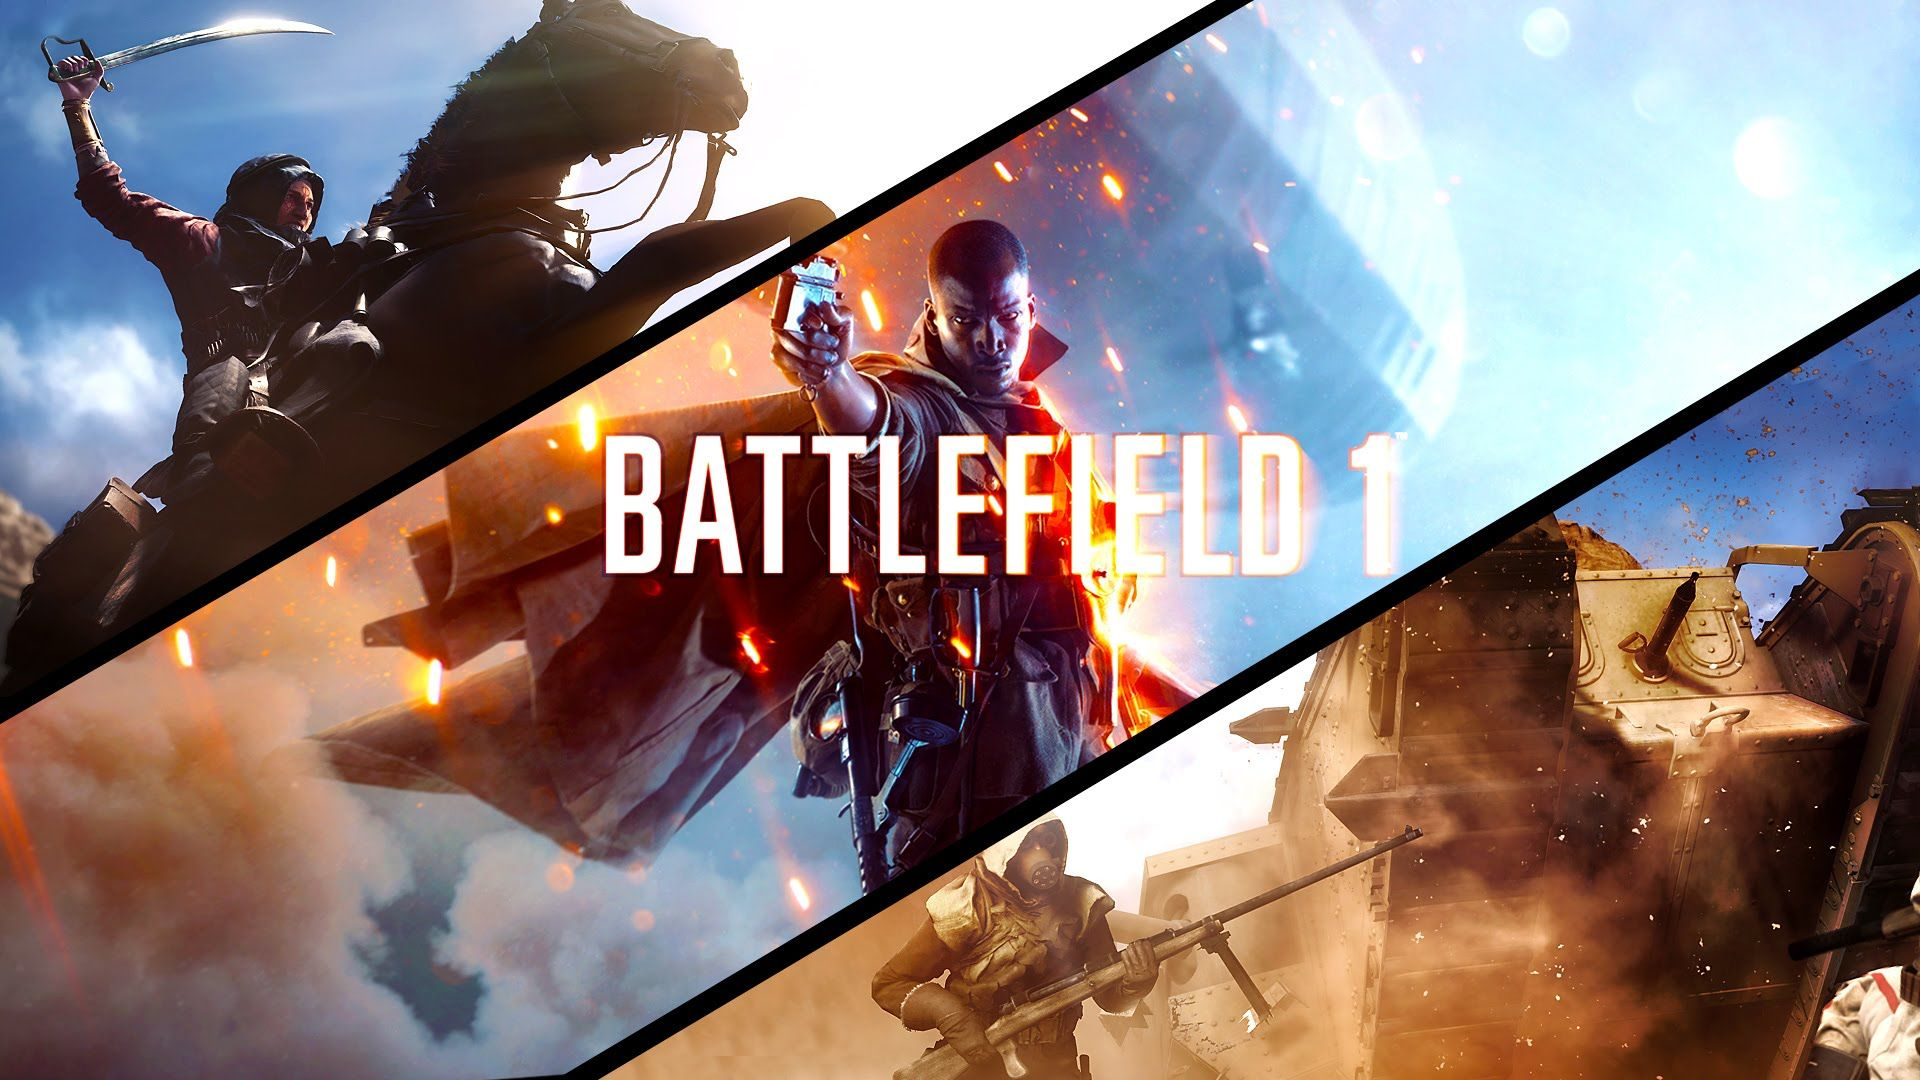 Battlefield 1 S Pc Minimum System Requirements Have Been Announced